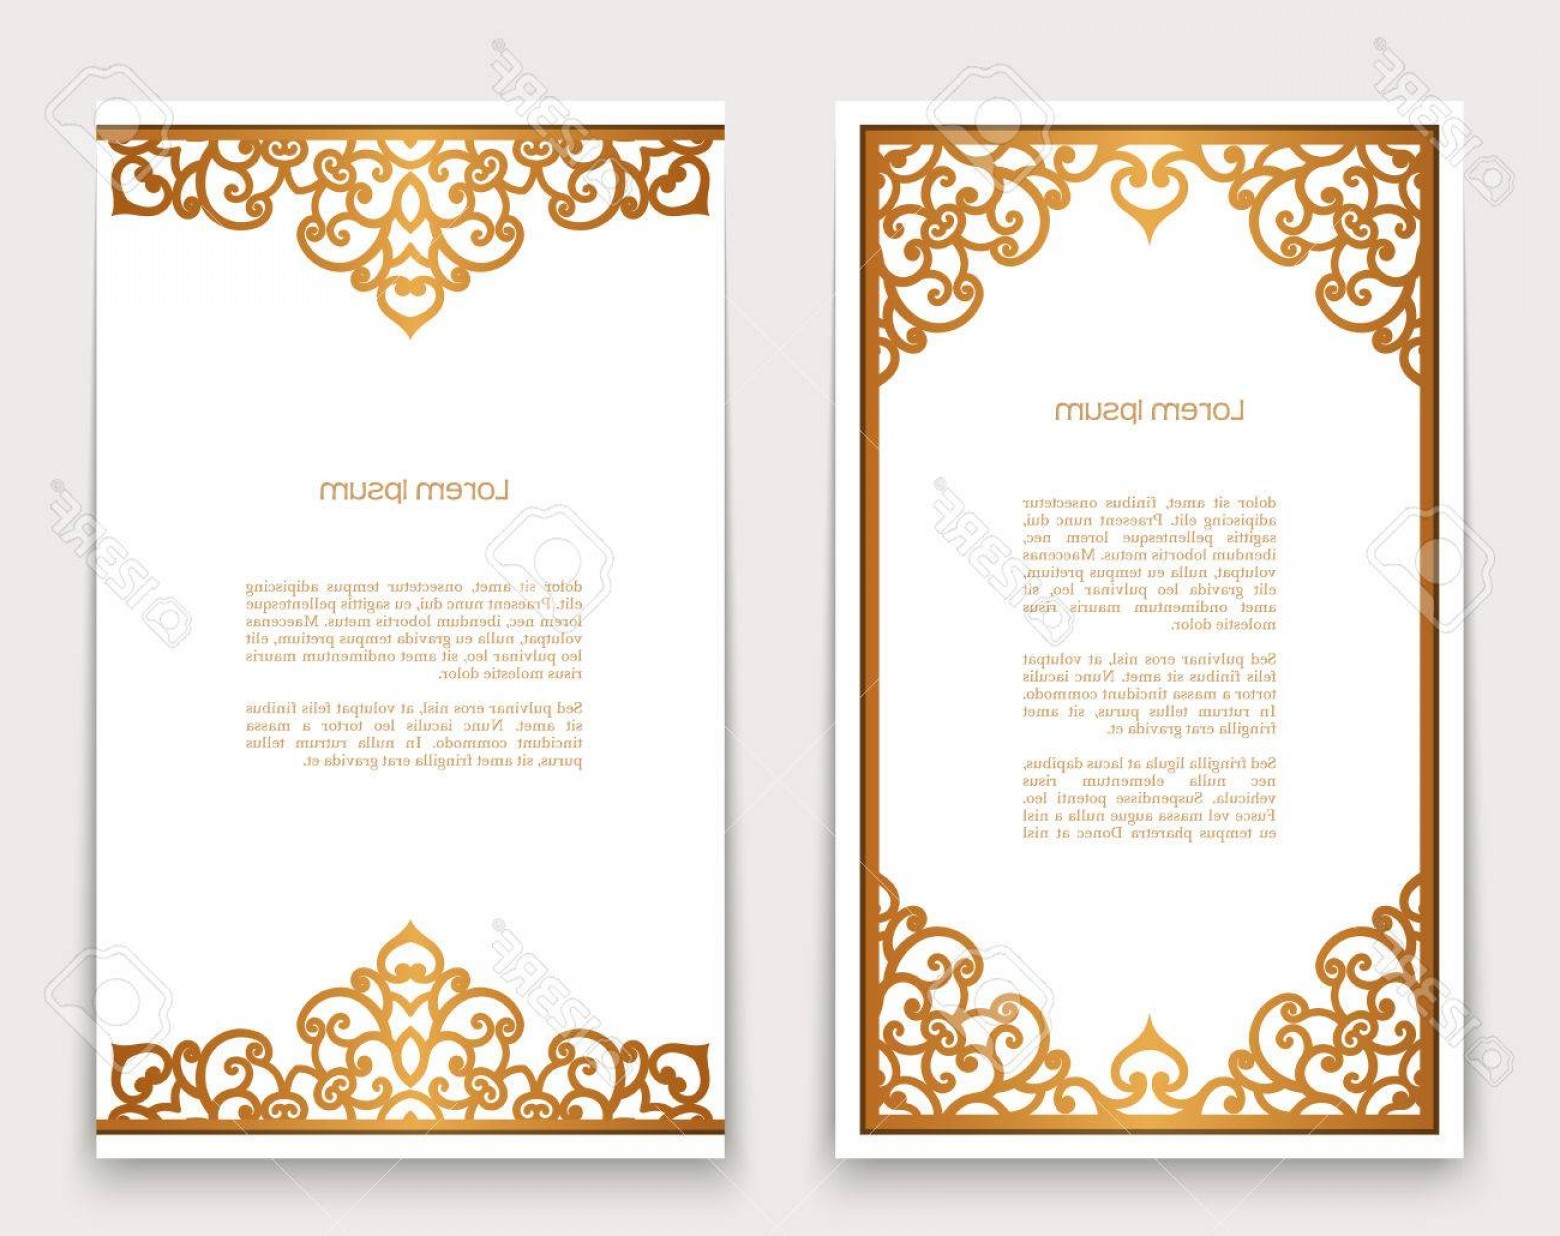 Gold Ornate Borders Vector: Photostock Vector Vintage Gold Rectangle Frames With Ornate Borders